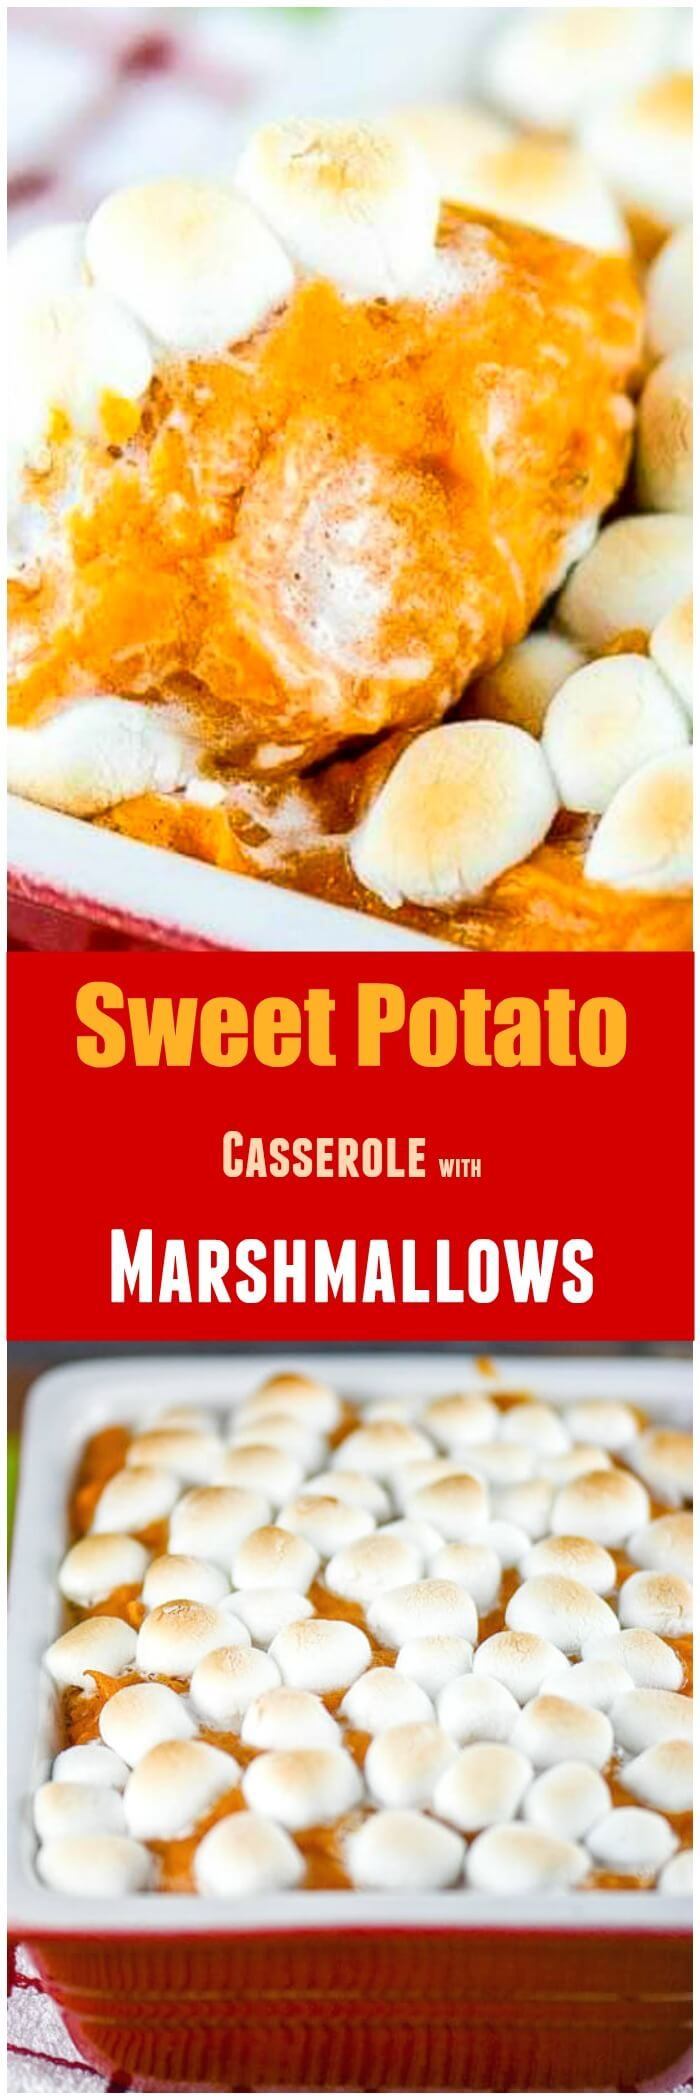 Sweet Potato Casserole with Marshmallows via @flavormosaic